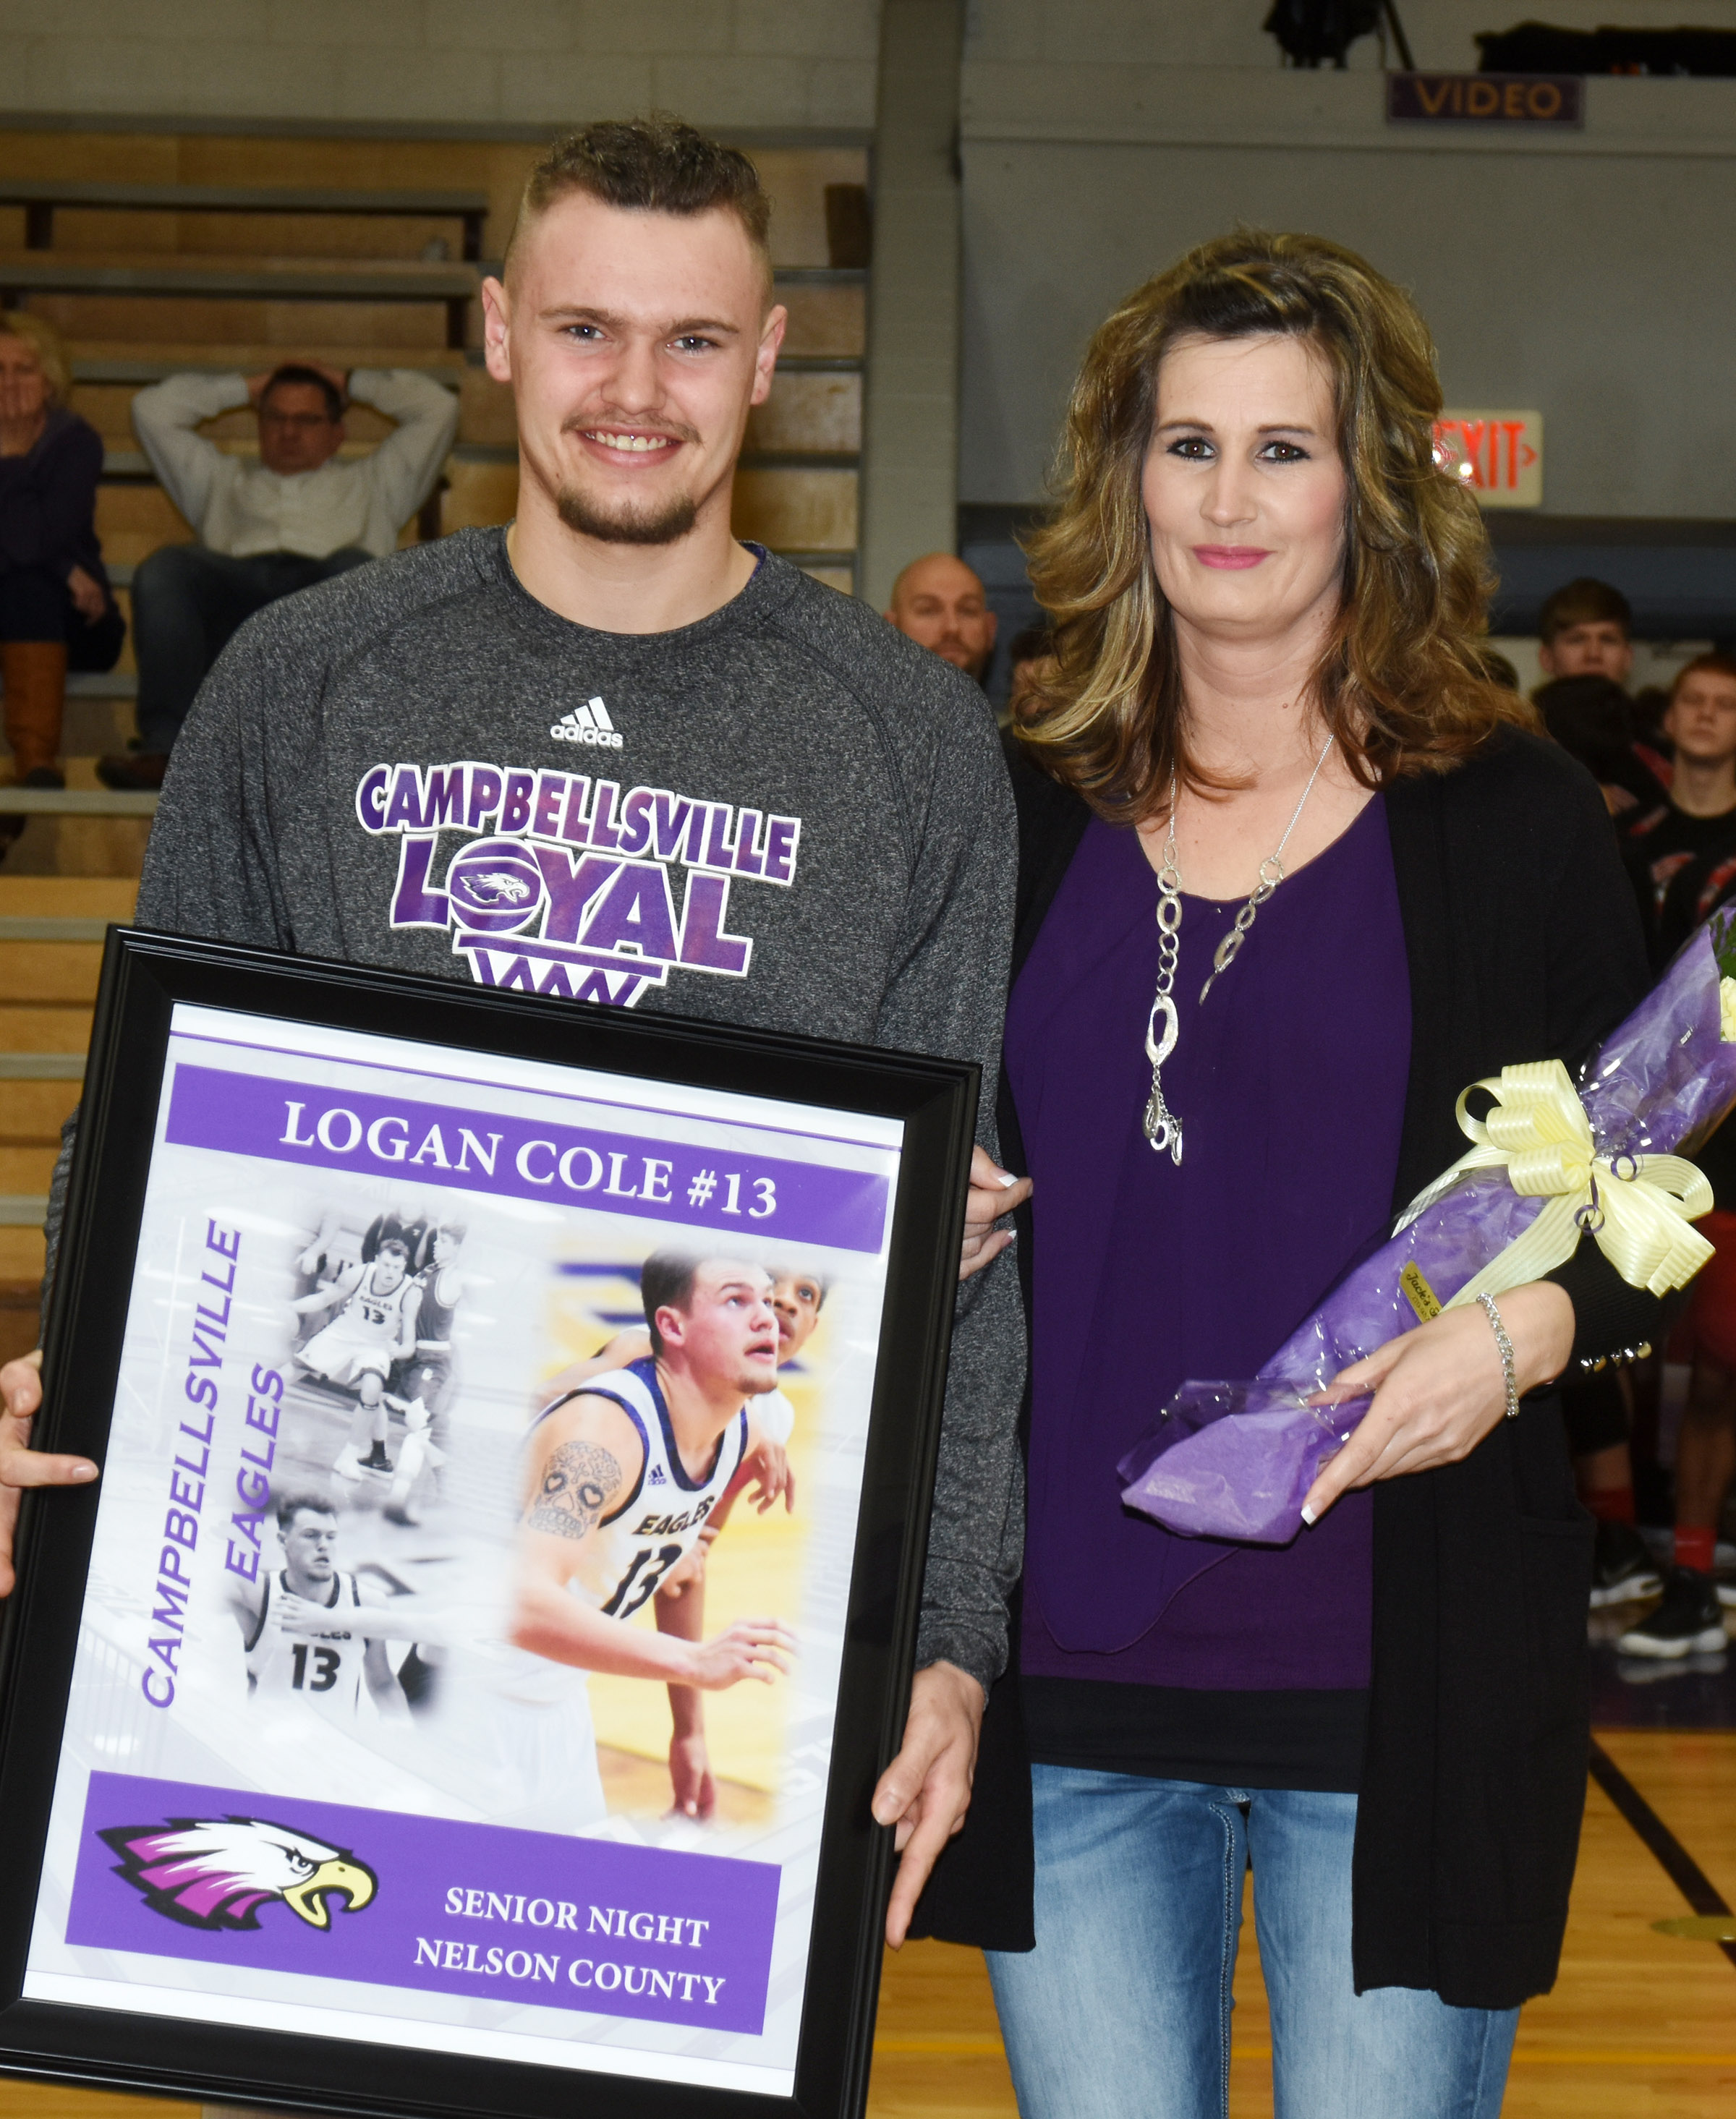 CHS senior boys' basketball player Logan Cole is honored. He is pictured with his mother, Stacie Lay.